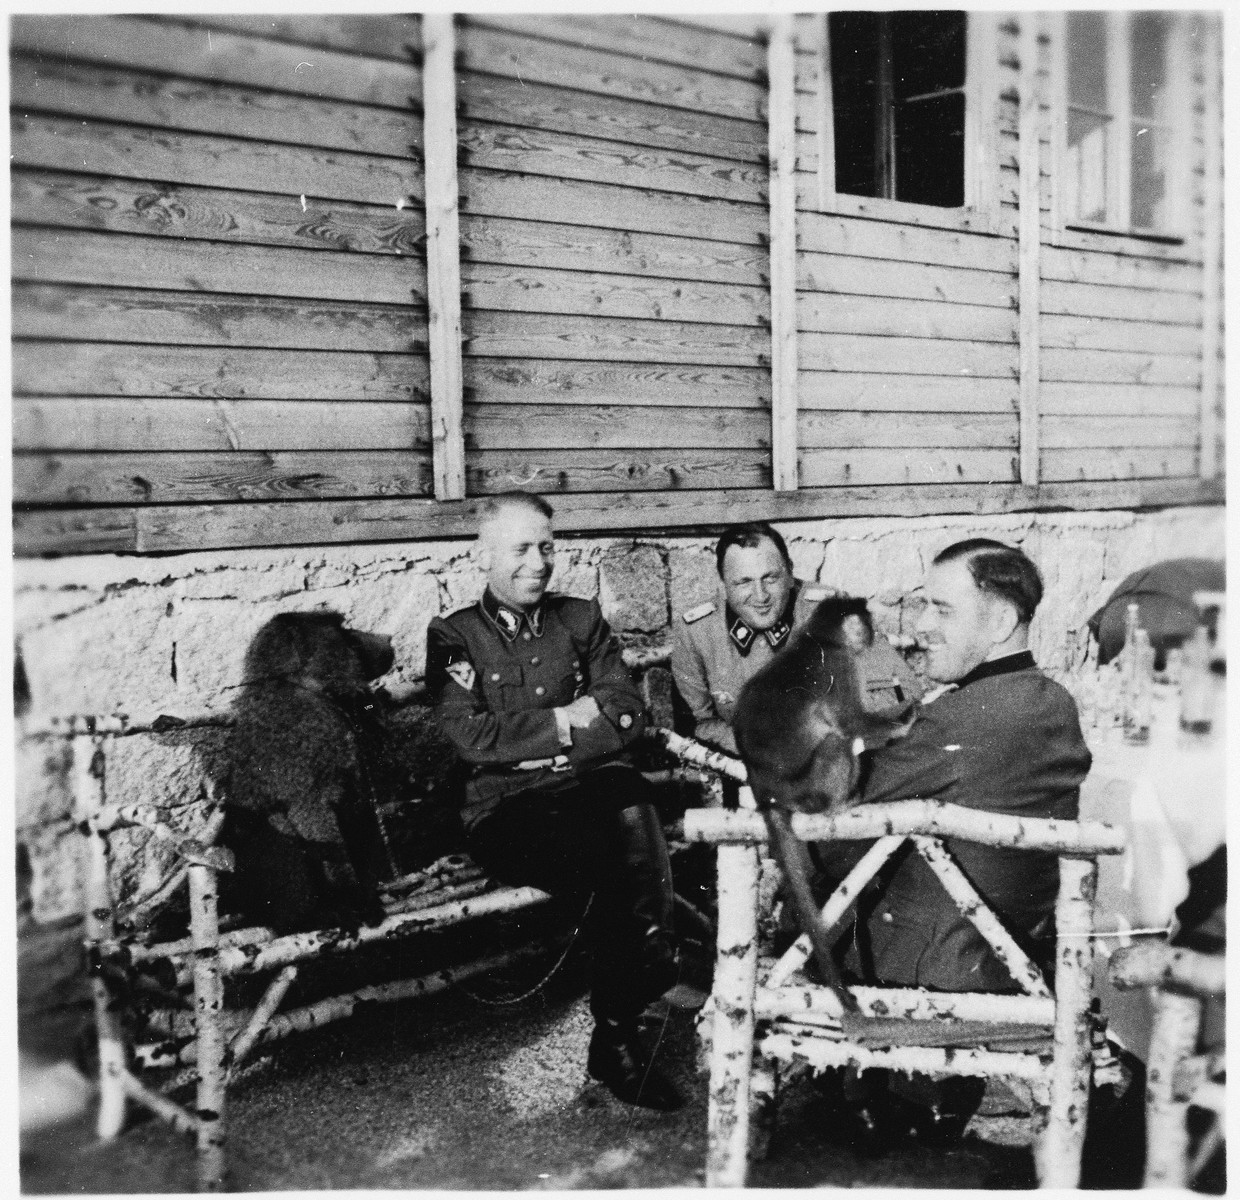 SS officers sit outside a building at the Gross-Rosen concentration camp laughing with a dog and a monkey.